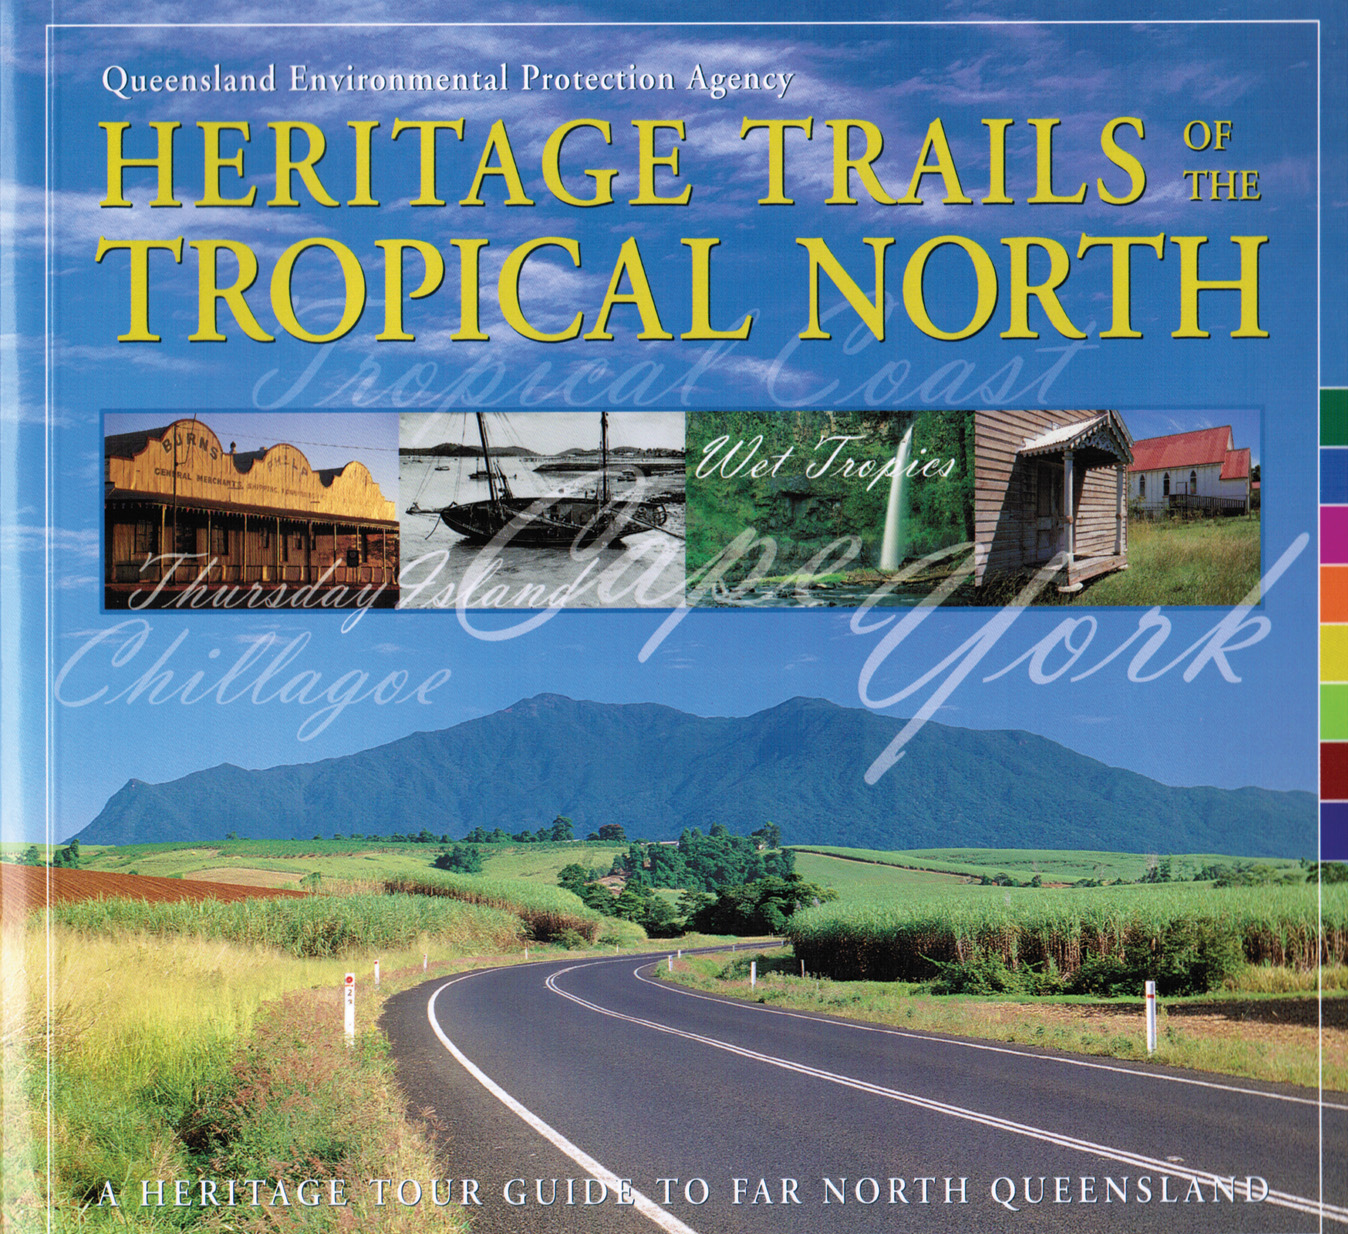 heritage trails of tropical north cover.